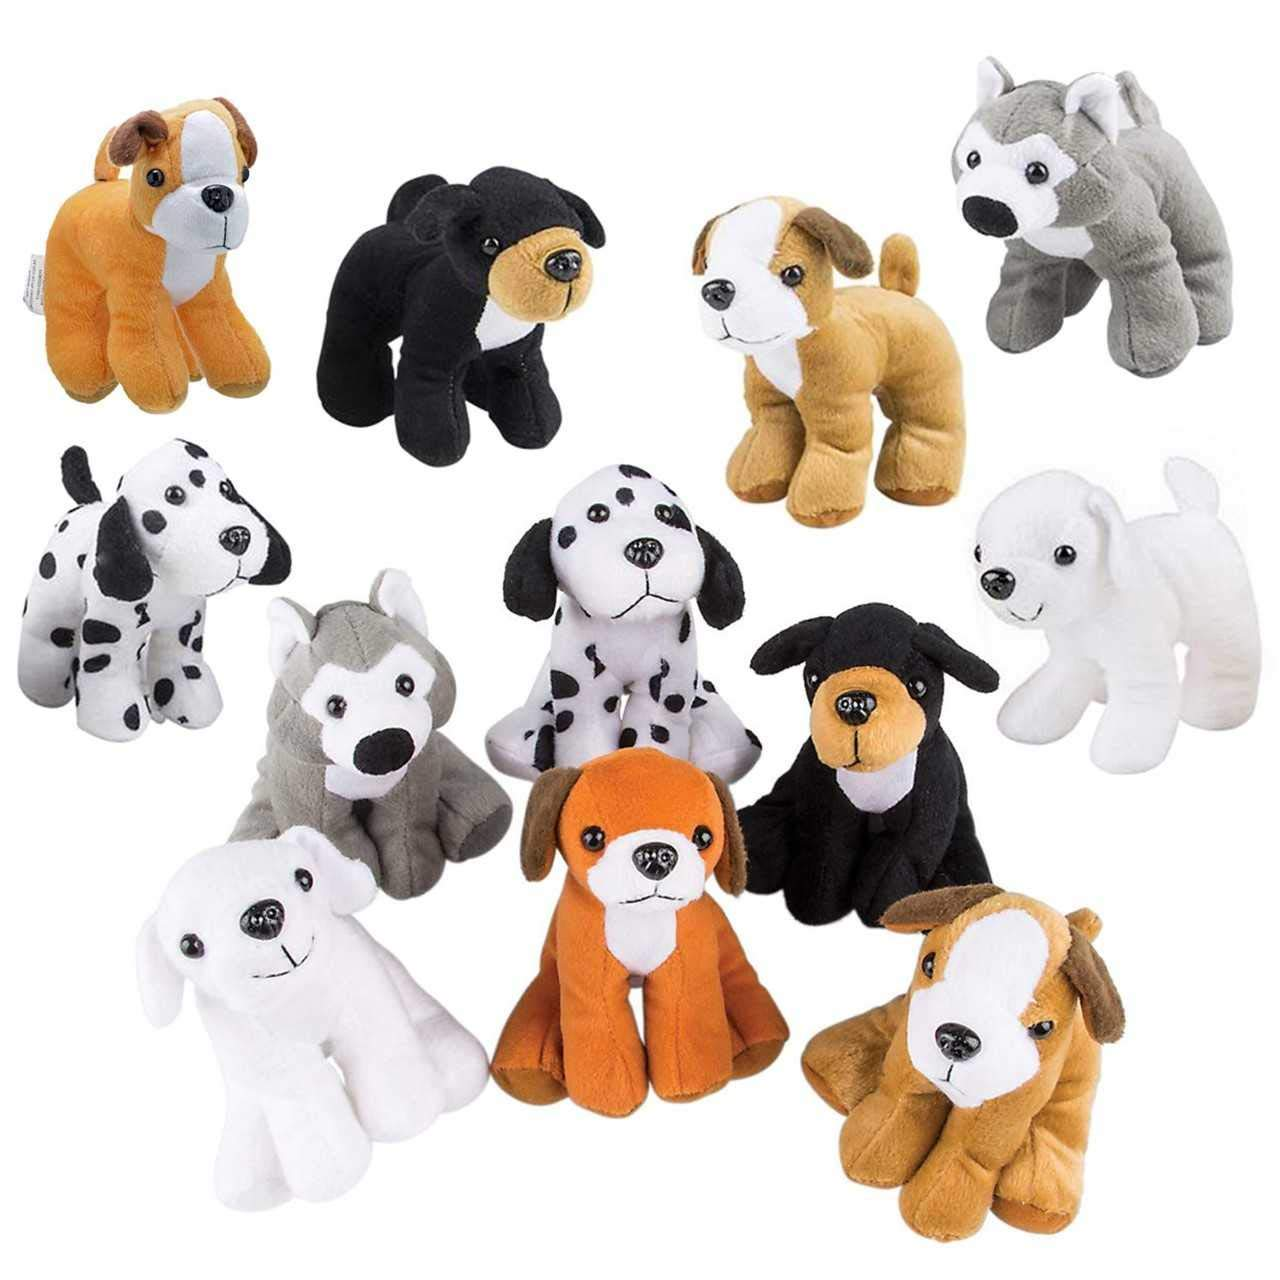 Bottles N Bags Plush Puppy Dog Stuffed Dog Animal Toys | Variety Pack Made of Soft Plush ● Great as a Party Favor, Gift, or Companion ● Pretend Play for Kids ● Dozen Puppy Assortment (24 Pack) by Bottles N Bags